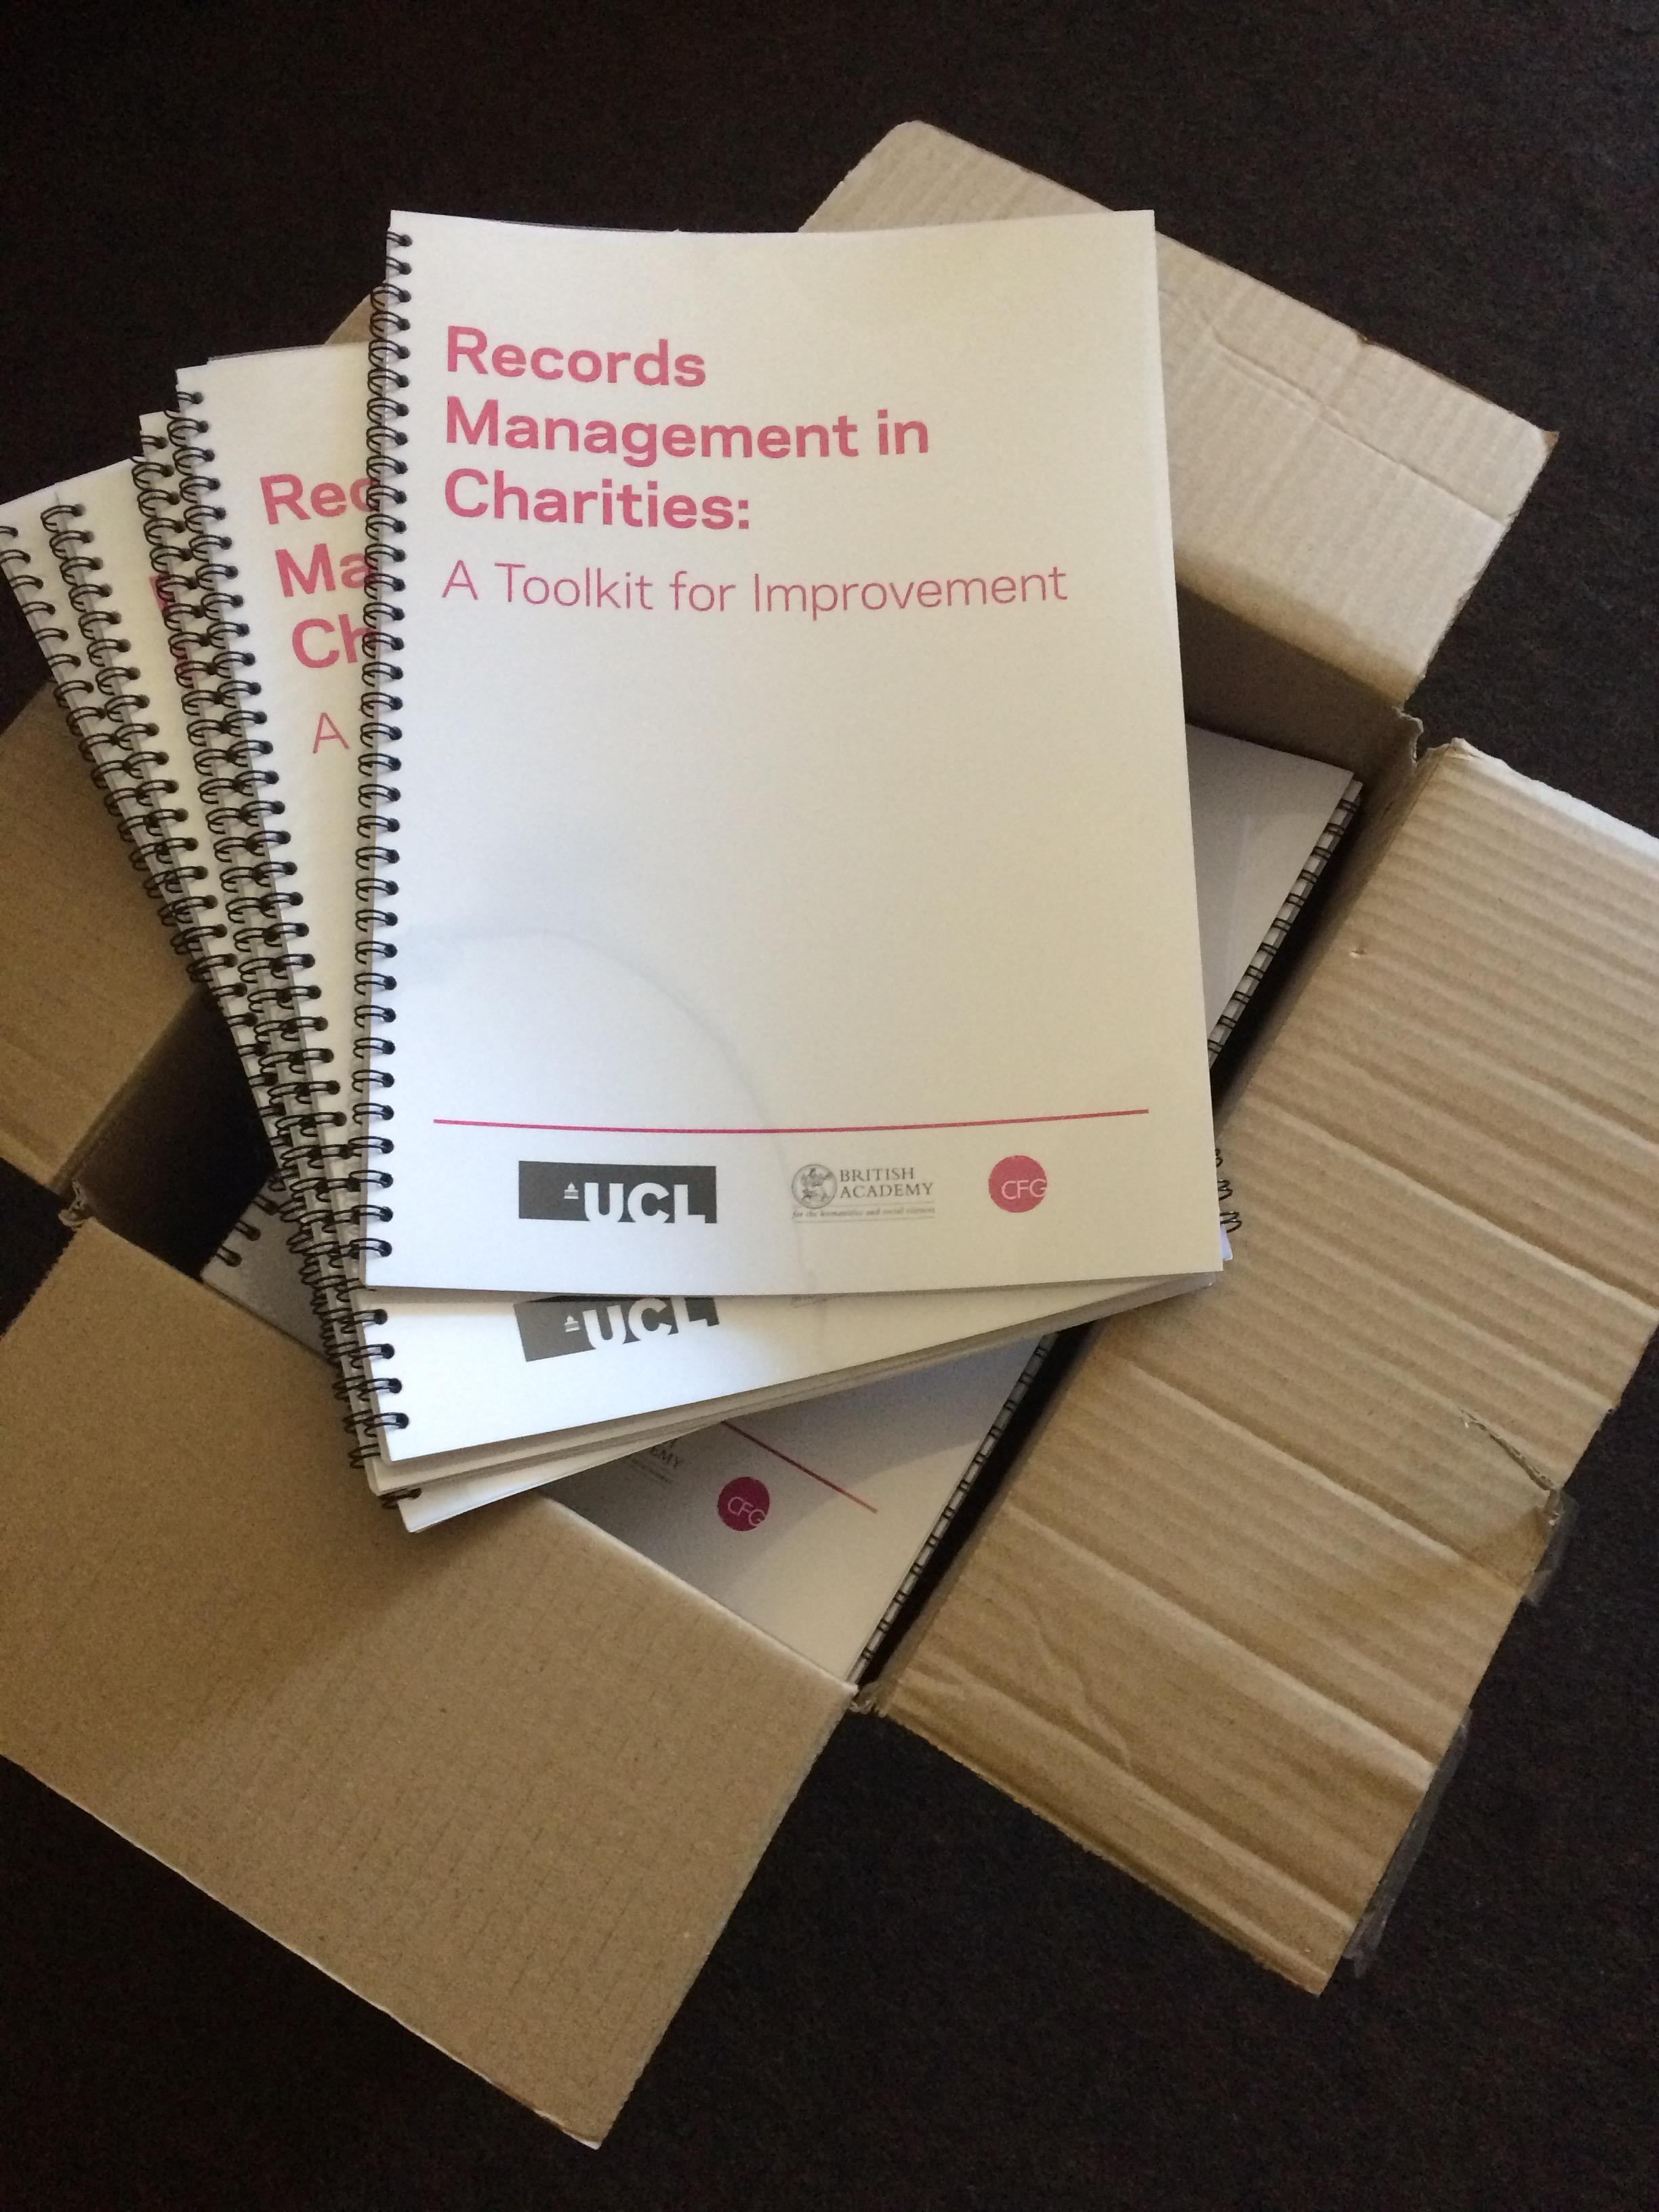 Image of toolkits#.png